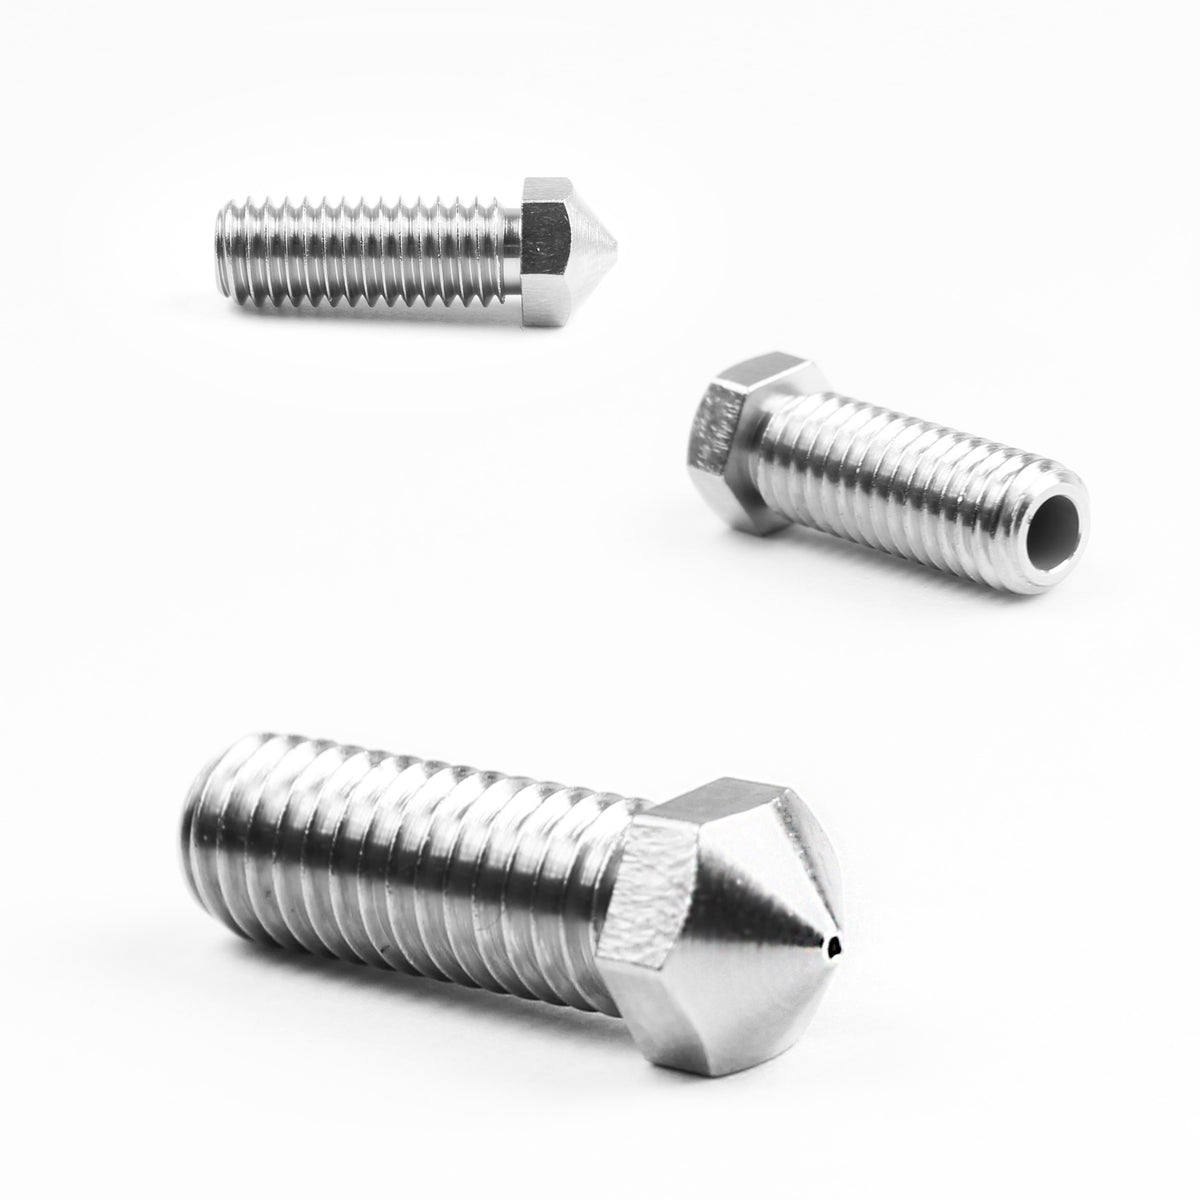 Micro Swiss Plated Wear Resistant Nozzle for Volcano Hotend 3mm Filament